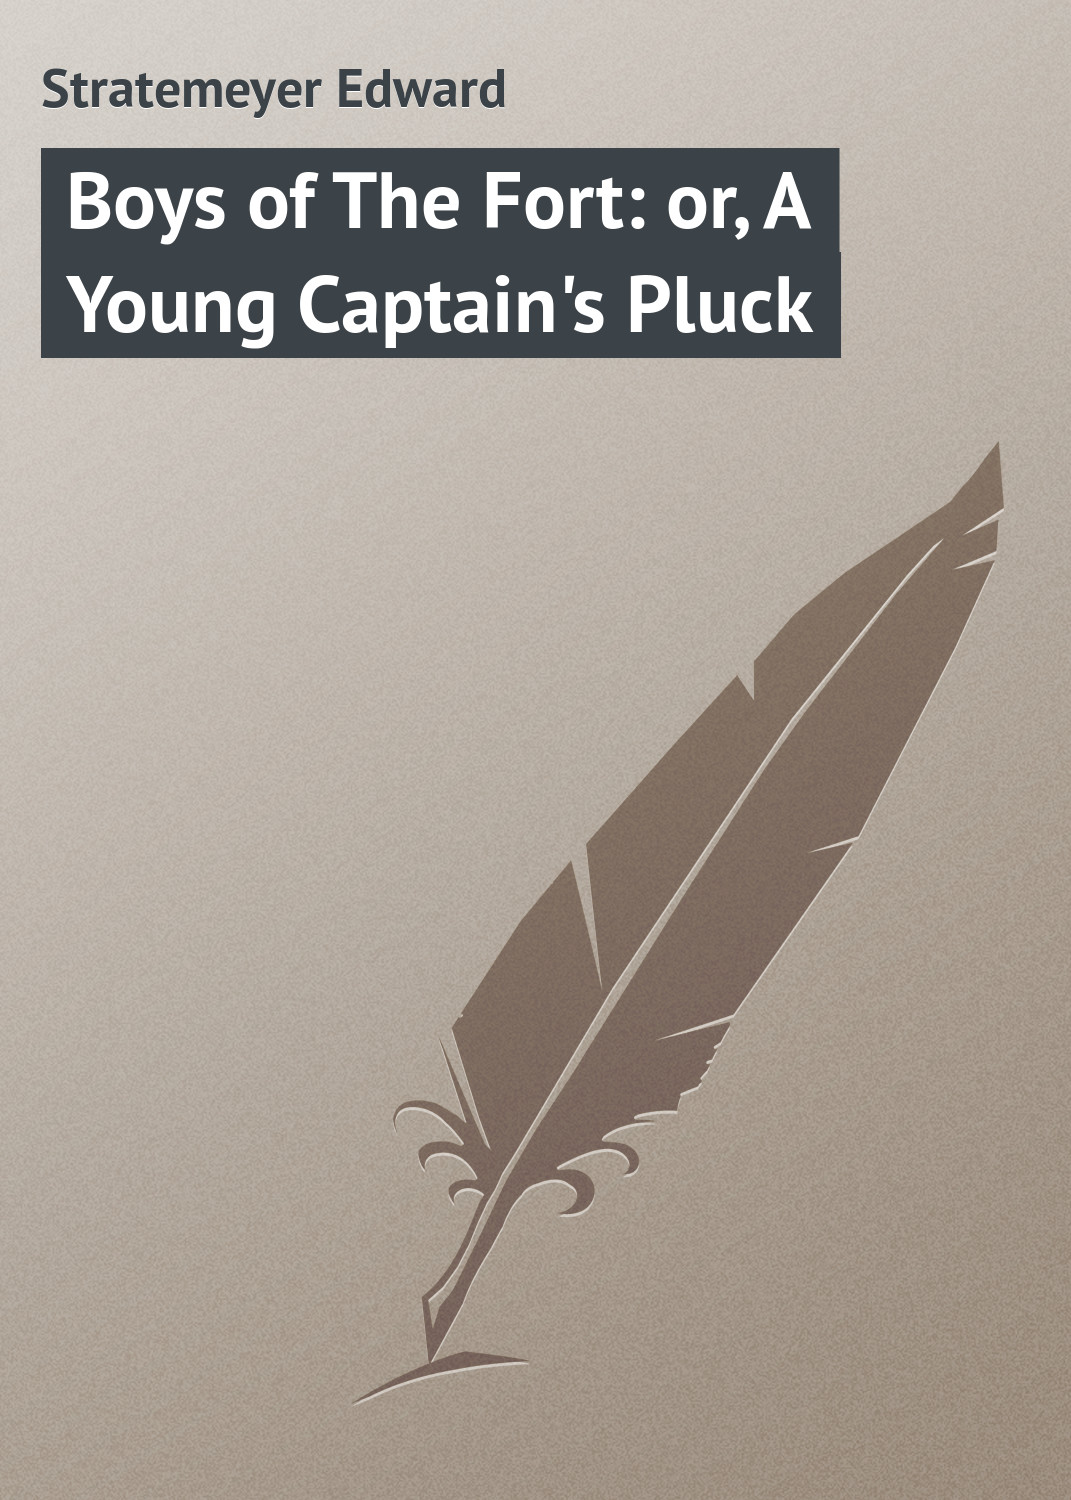 Stratemeyer Edward Boys of The Fort: or, A Young Captain's Pluck